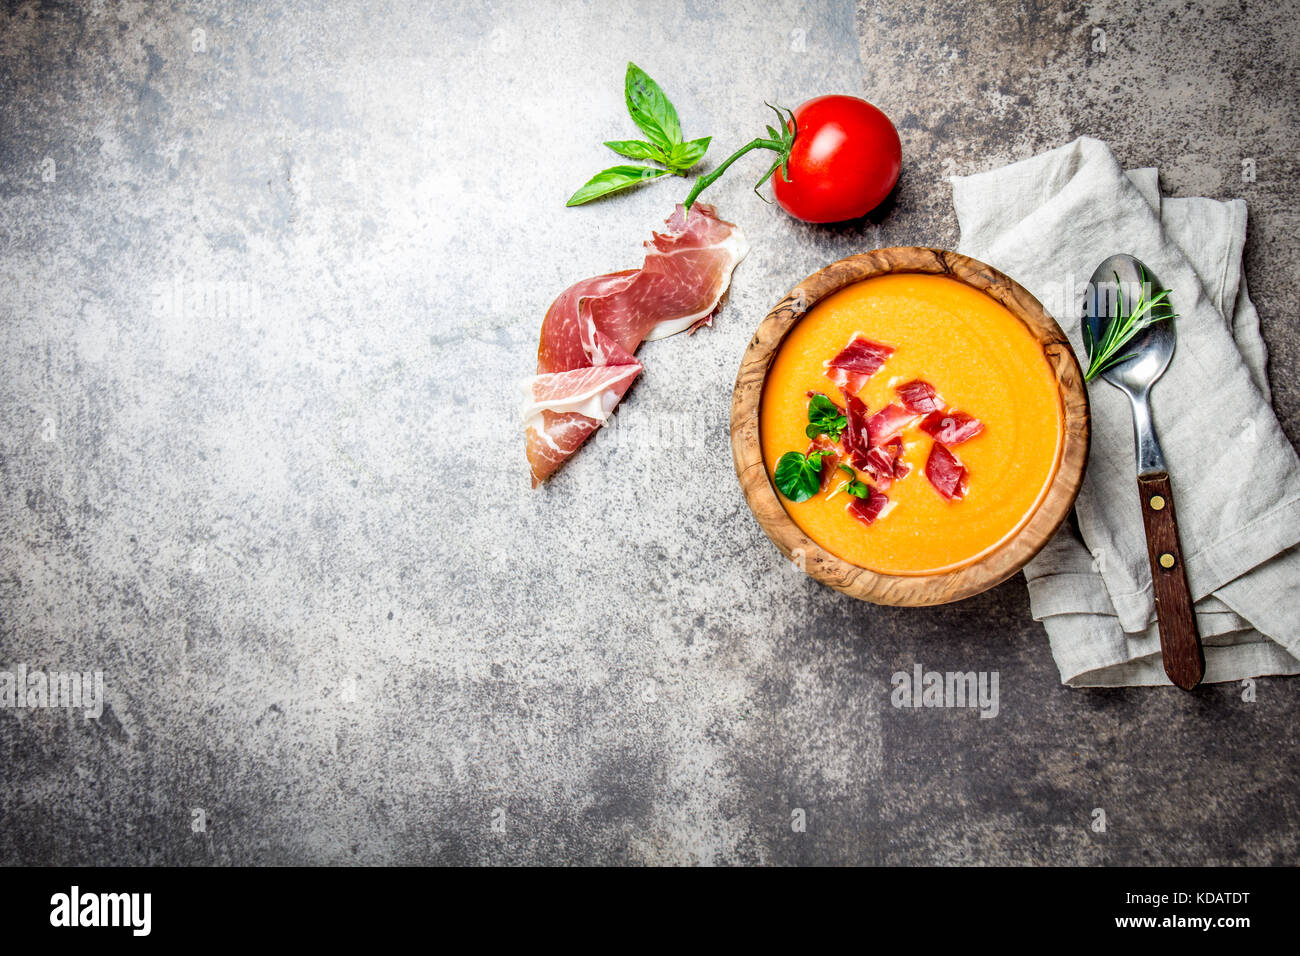 Spanish tomato soup Salmorejo served in olive wooden bowl with ham jamon serrano on stone background. Top view, - Stock Image